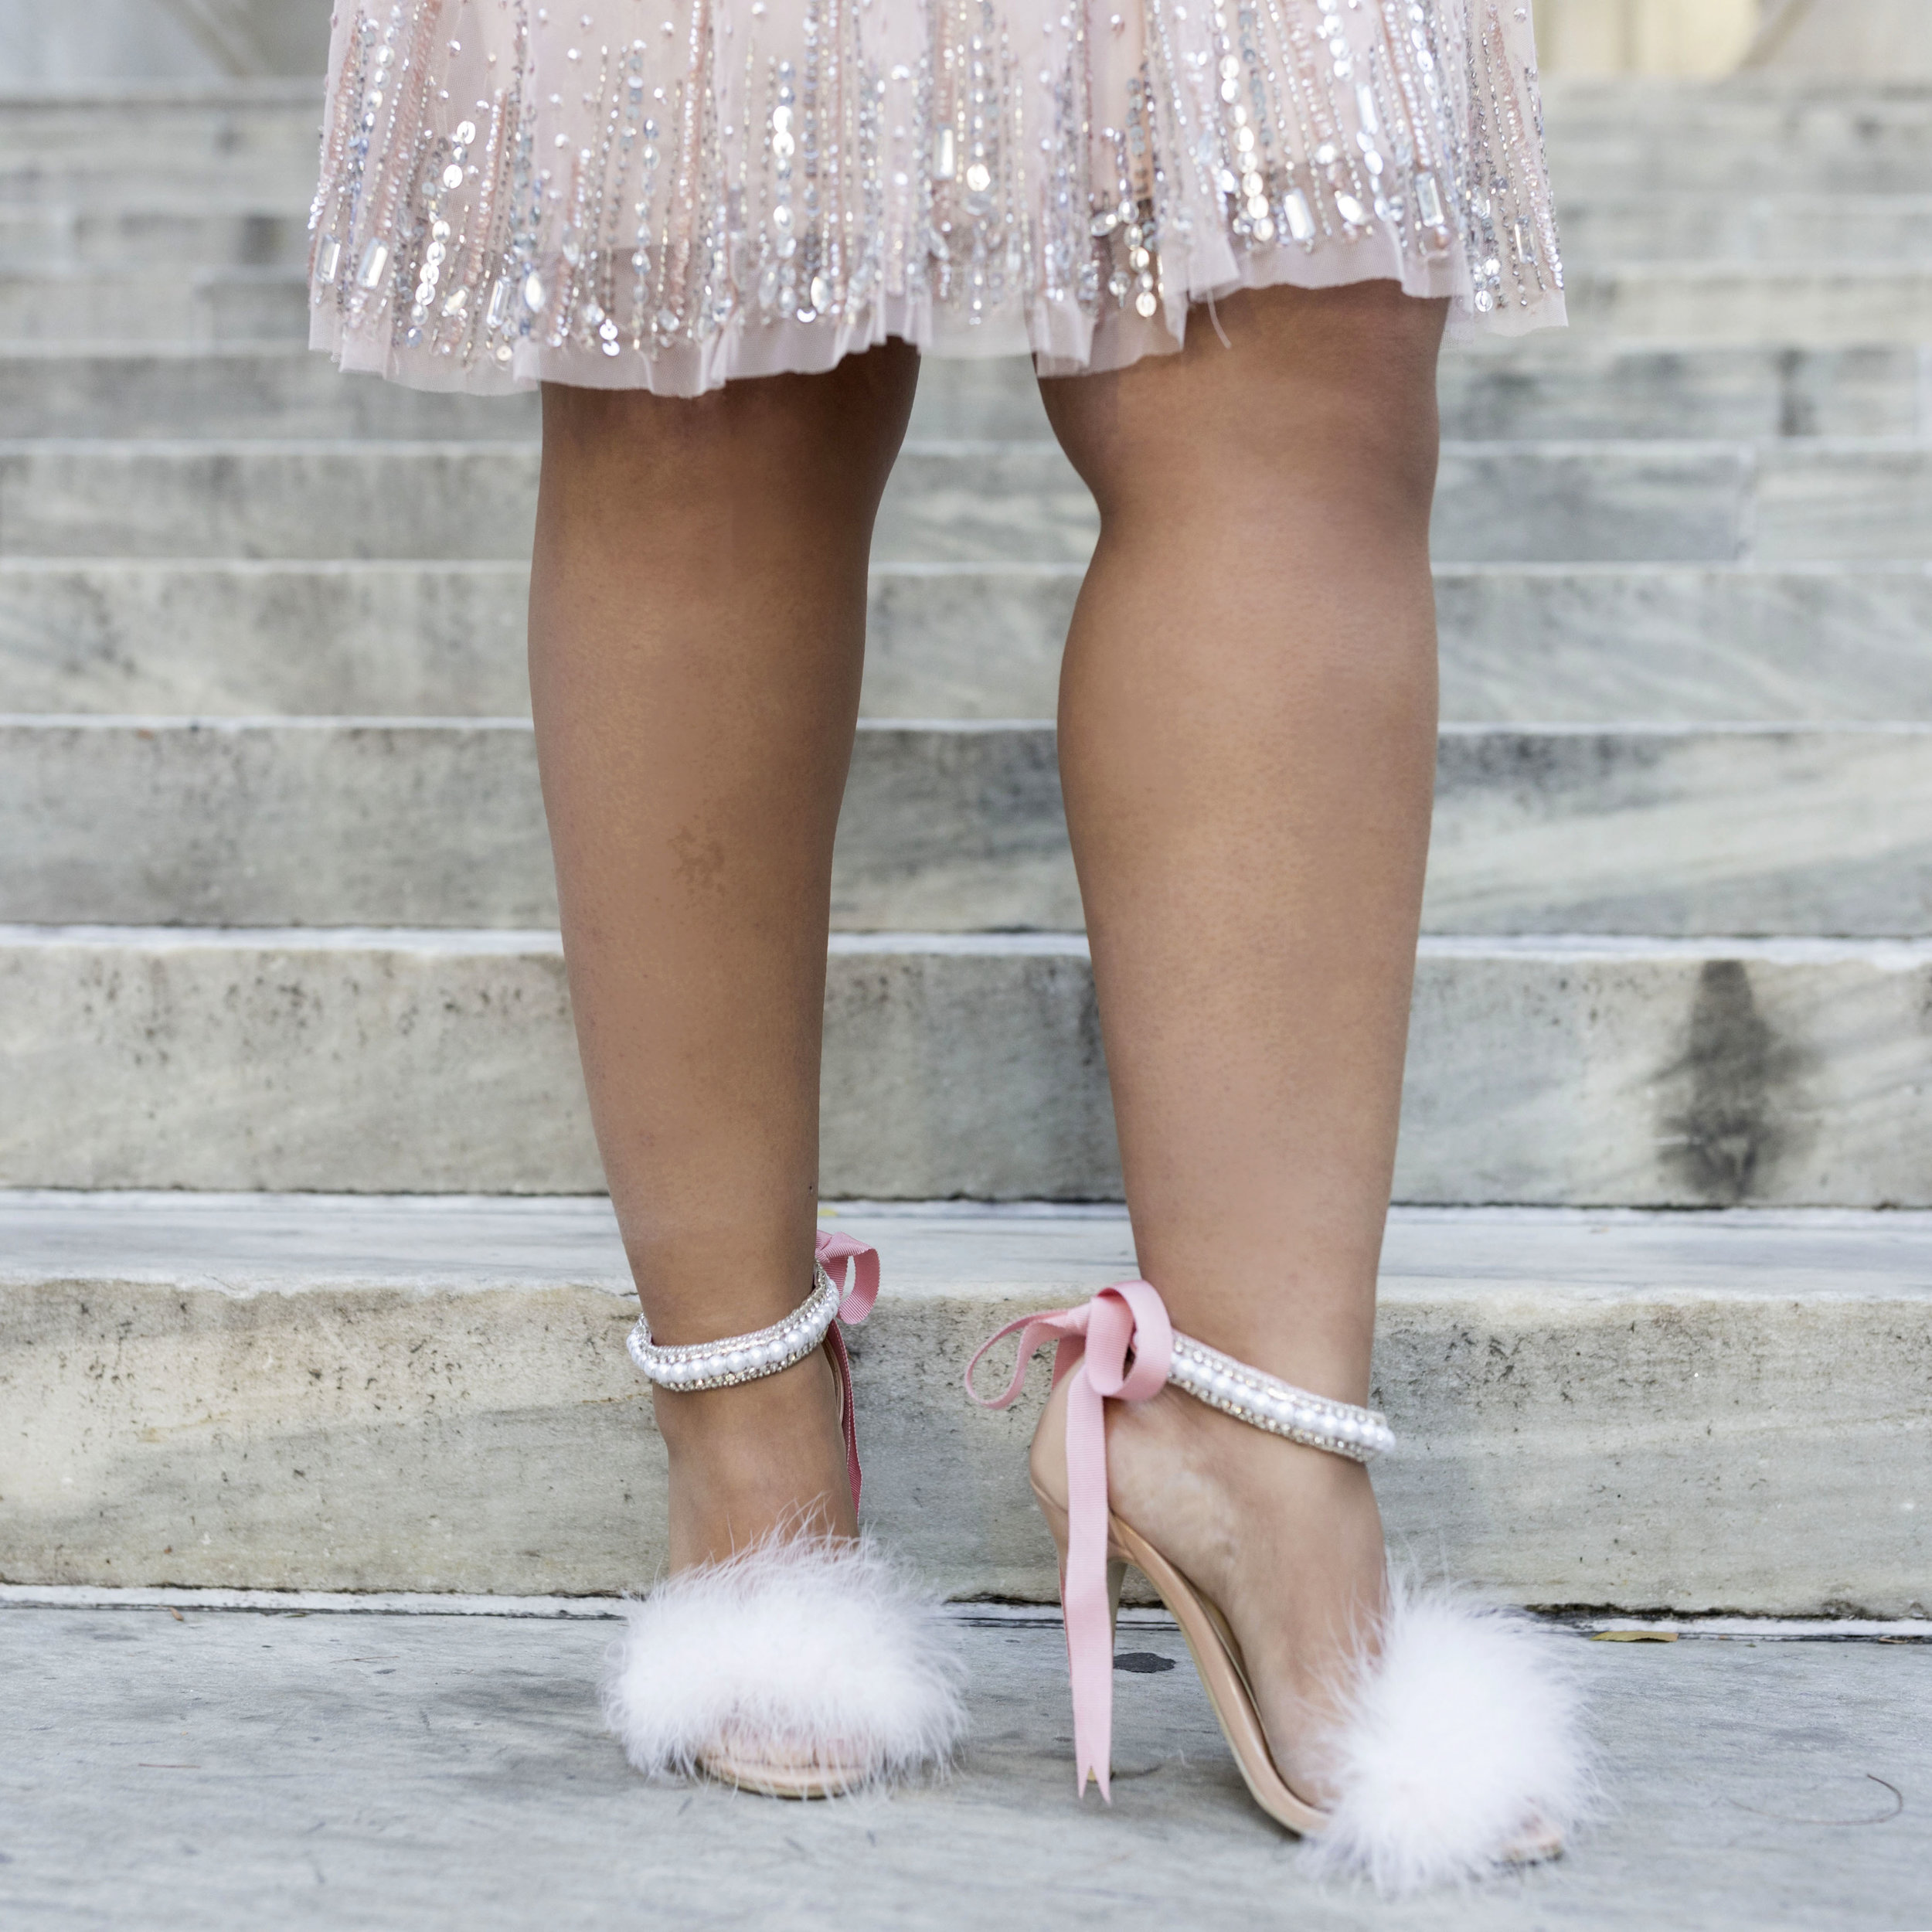 Krity S x Valentine's Day x Aidan Mattox Beaded Short Dress x H&M Faux Fur14.jpg